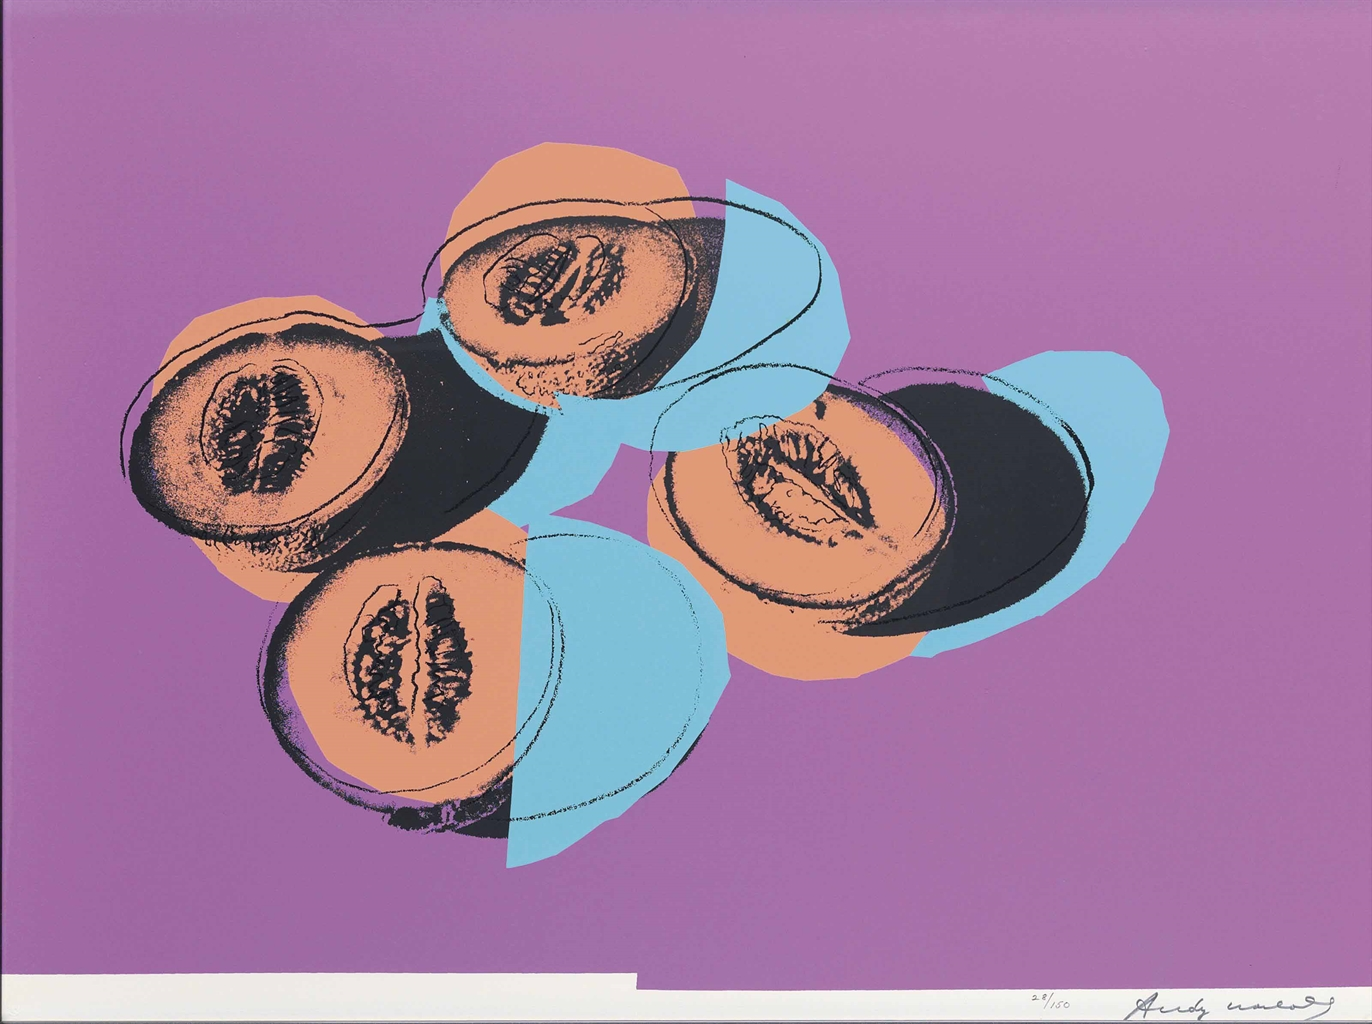 Andy Warhol-Cantaloupes II from Space Fruit: Still Lifes-1979